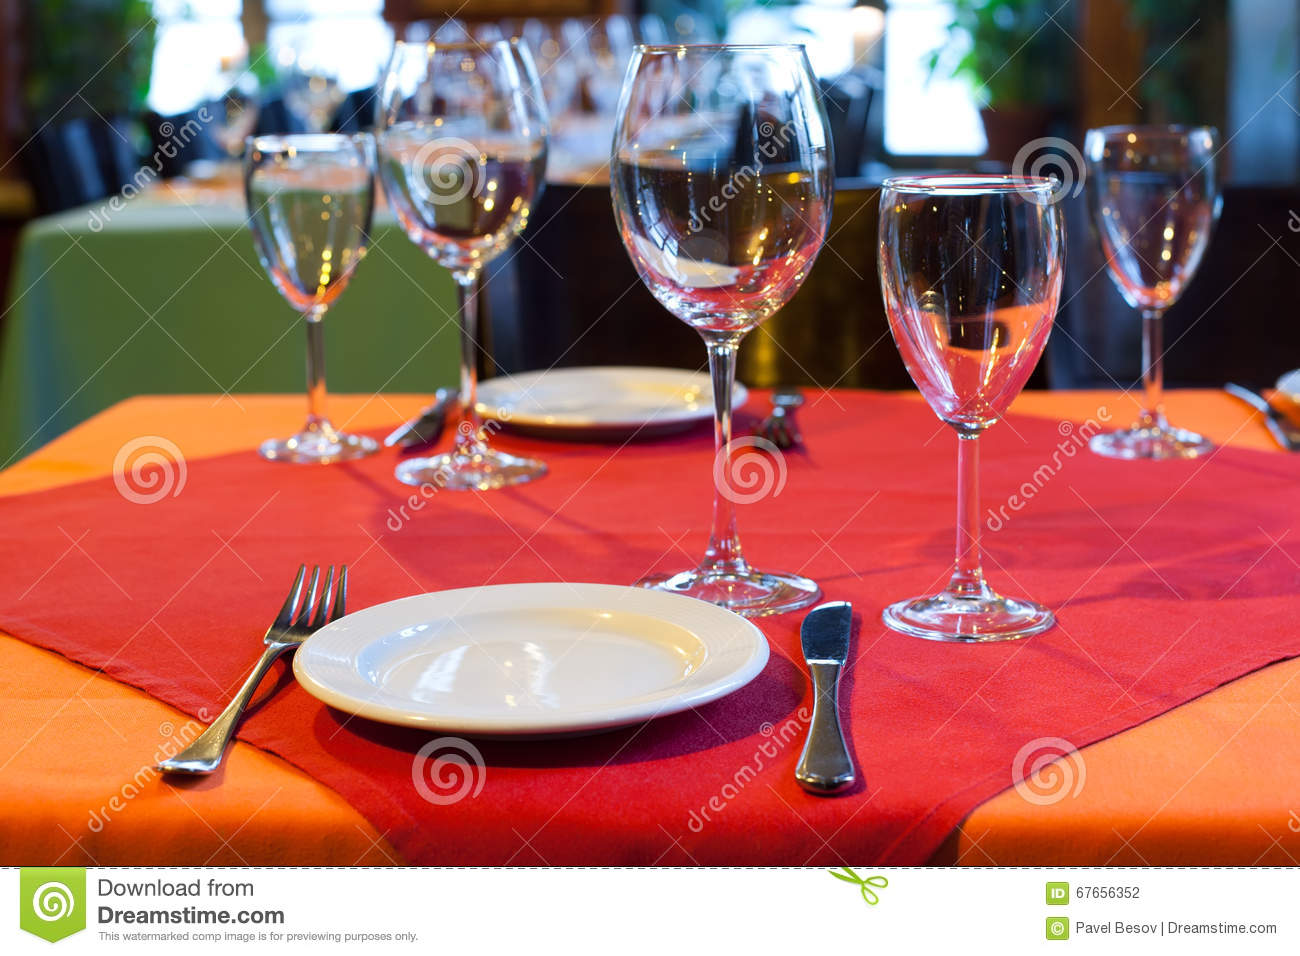 Served table in restaurant. white plate knife fork and wine glasses on red napkin. romantic interior concept